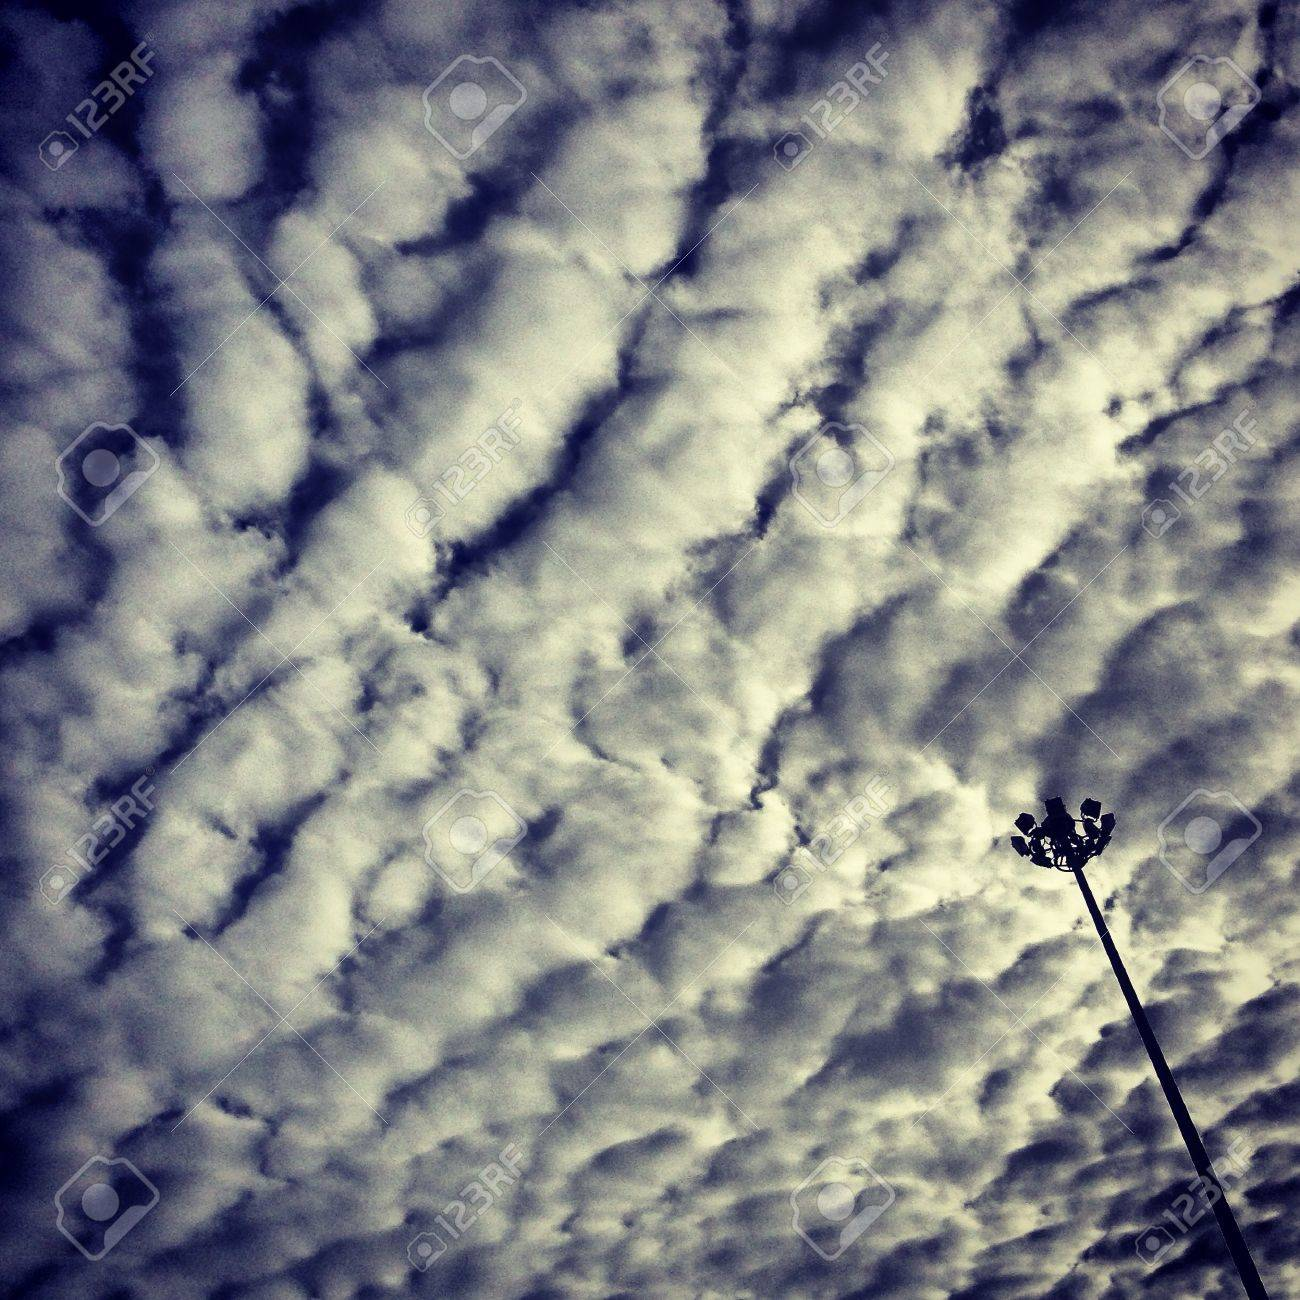 The wave cloud and the light pole - 21342197